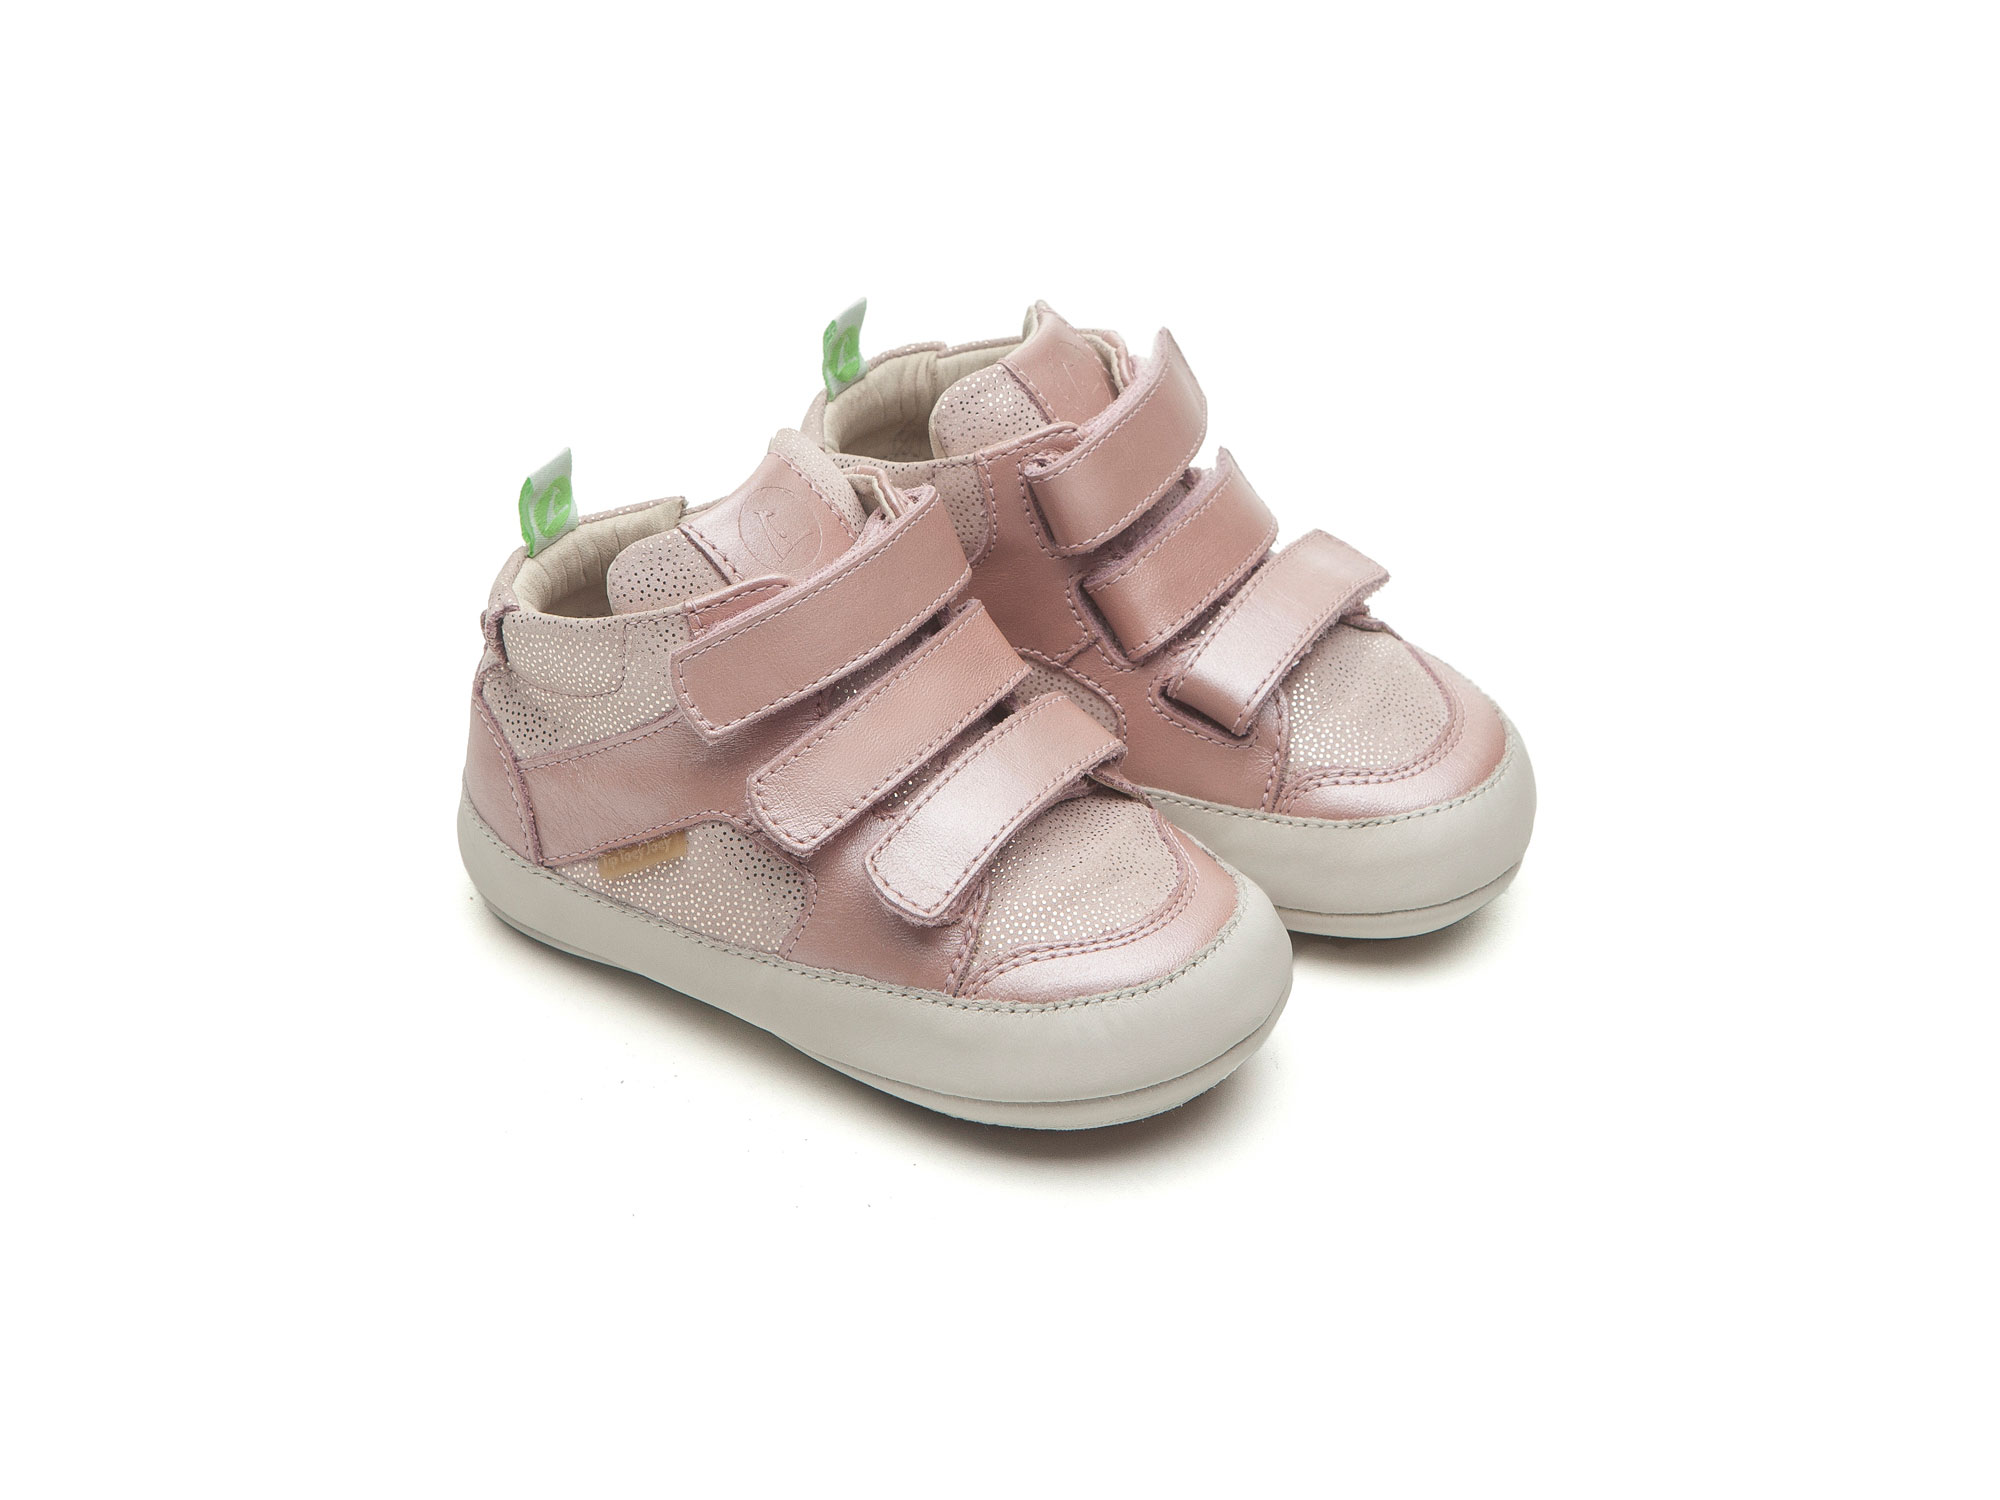 bb269c1fd8c3e3 Boot Metropoly Pink Dream  Pink Stars Baby for ages 0 to 2 years - 0